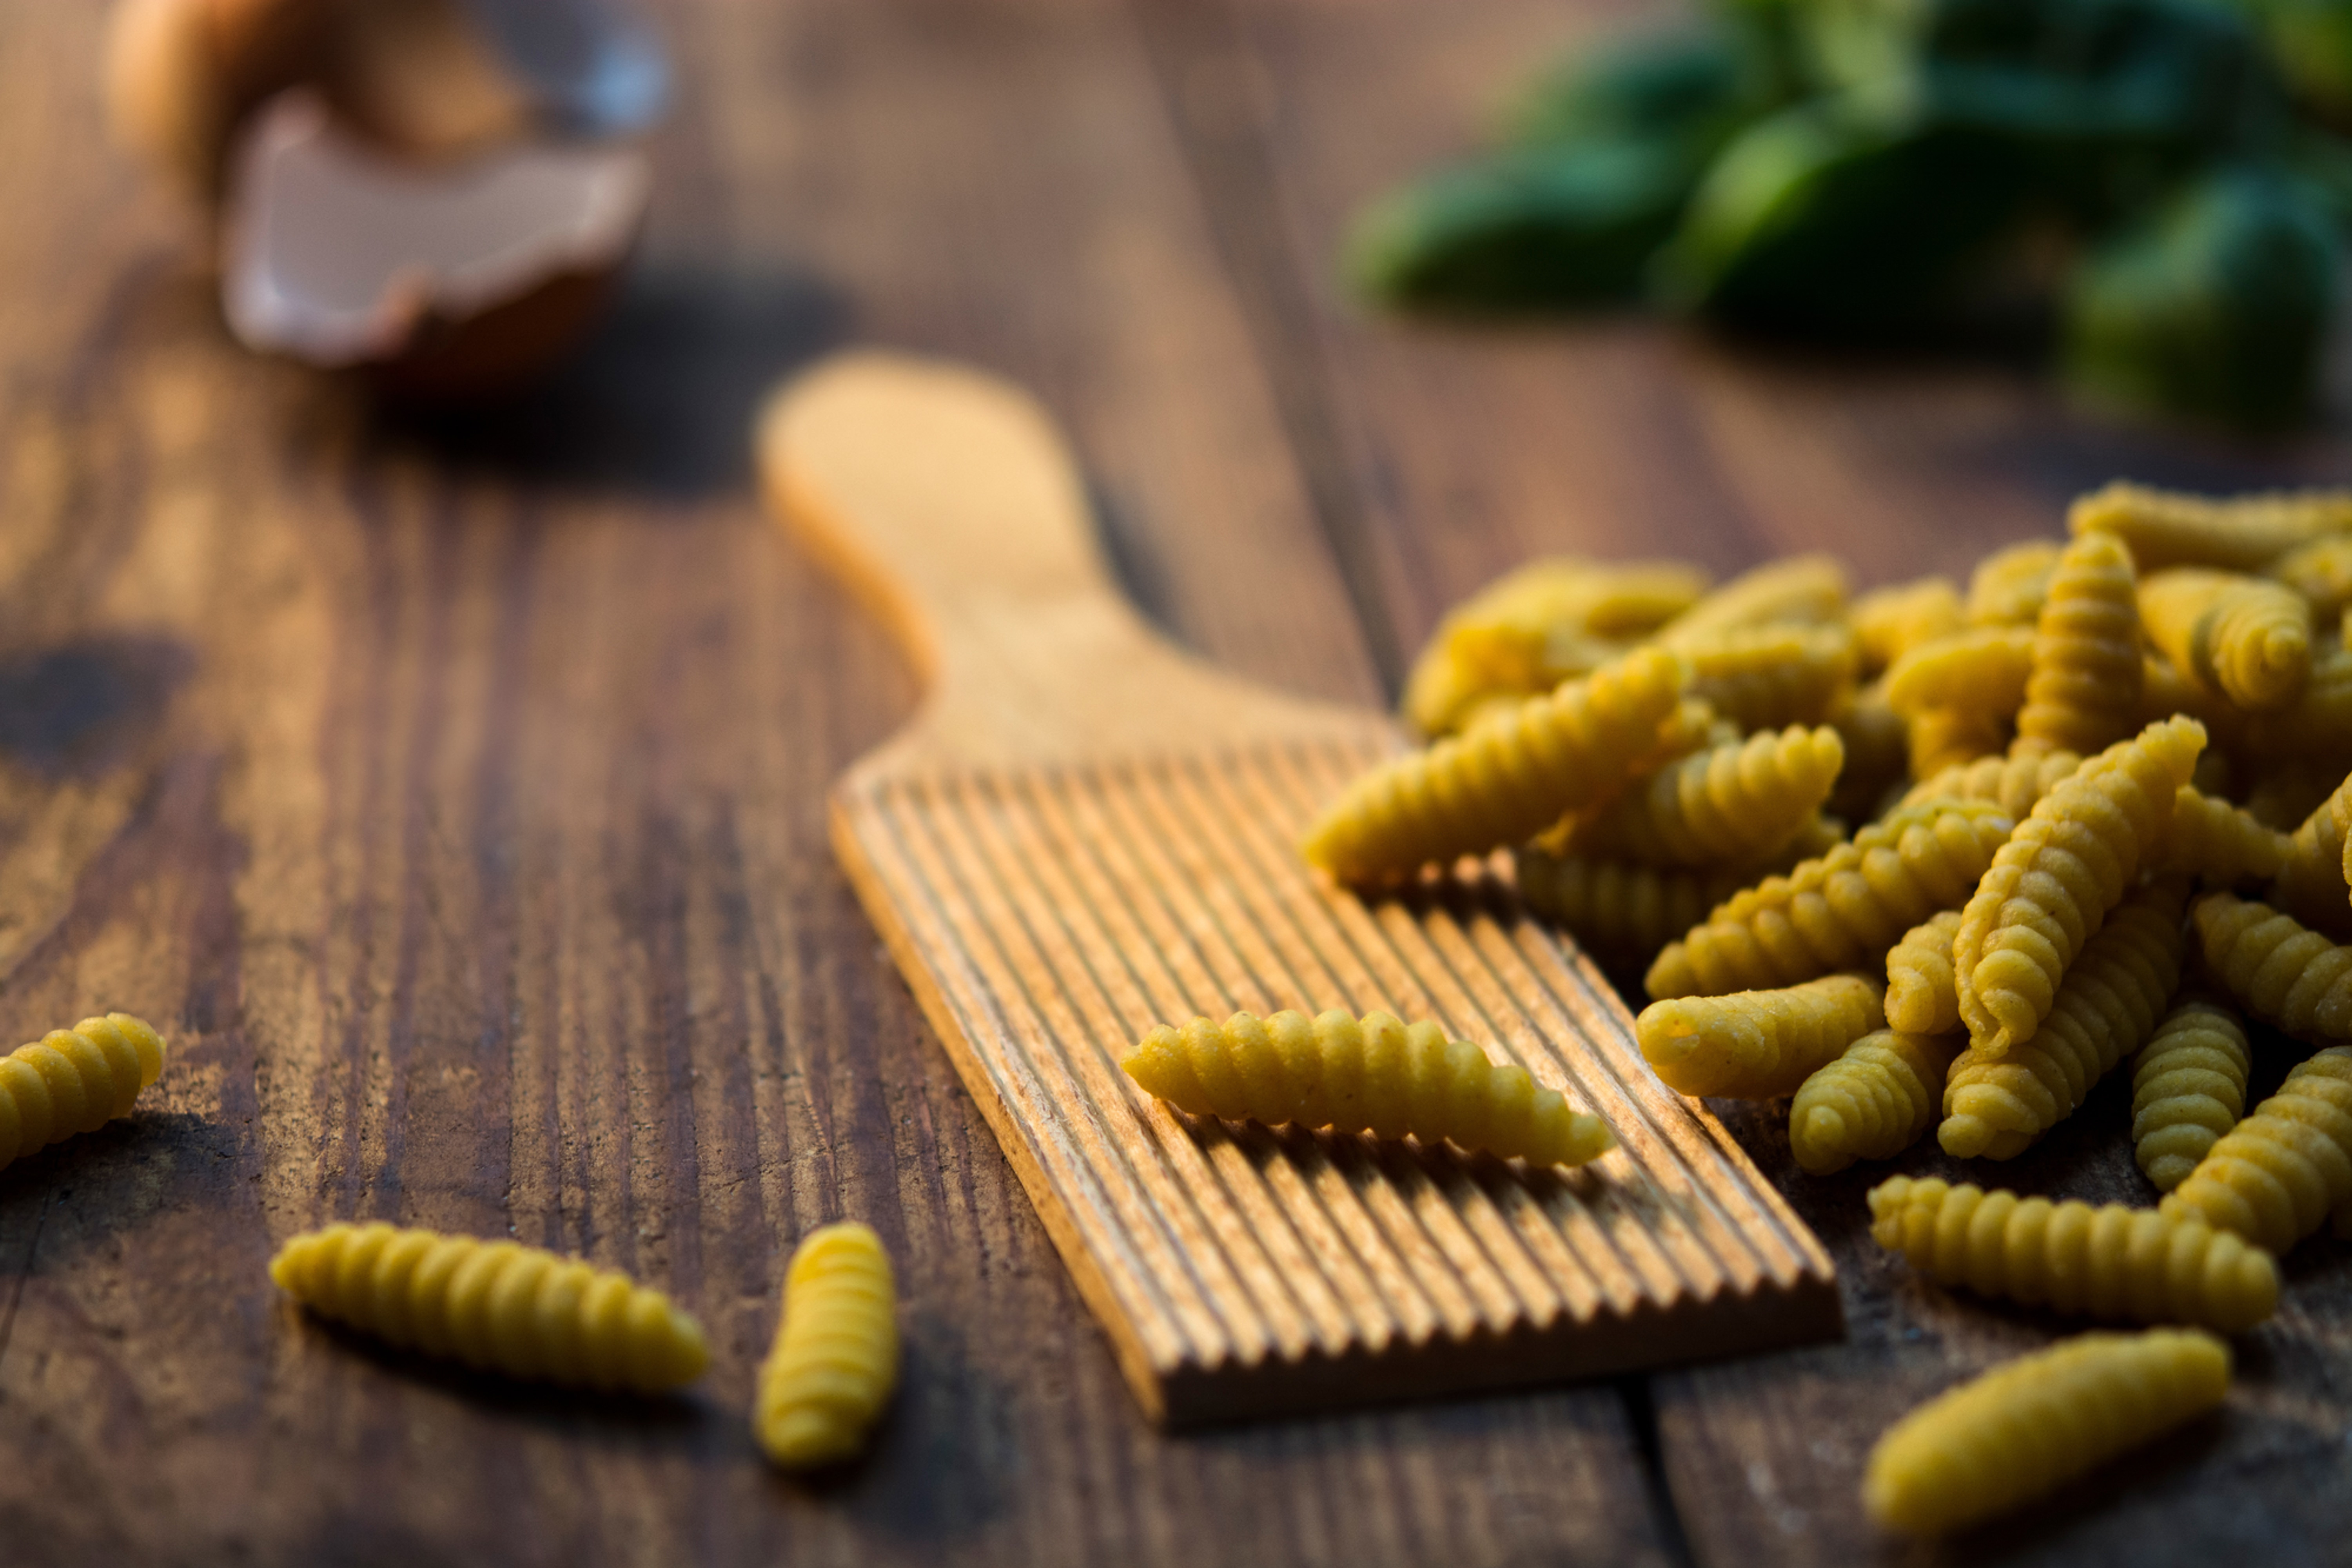 Pasta Shapes Class Coming January 2022